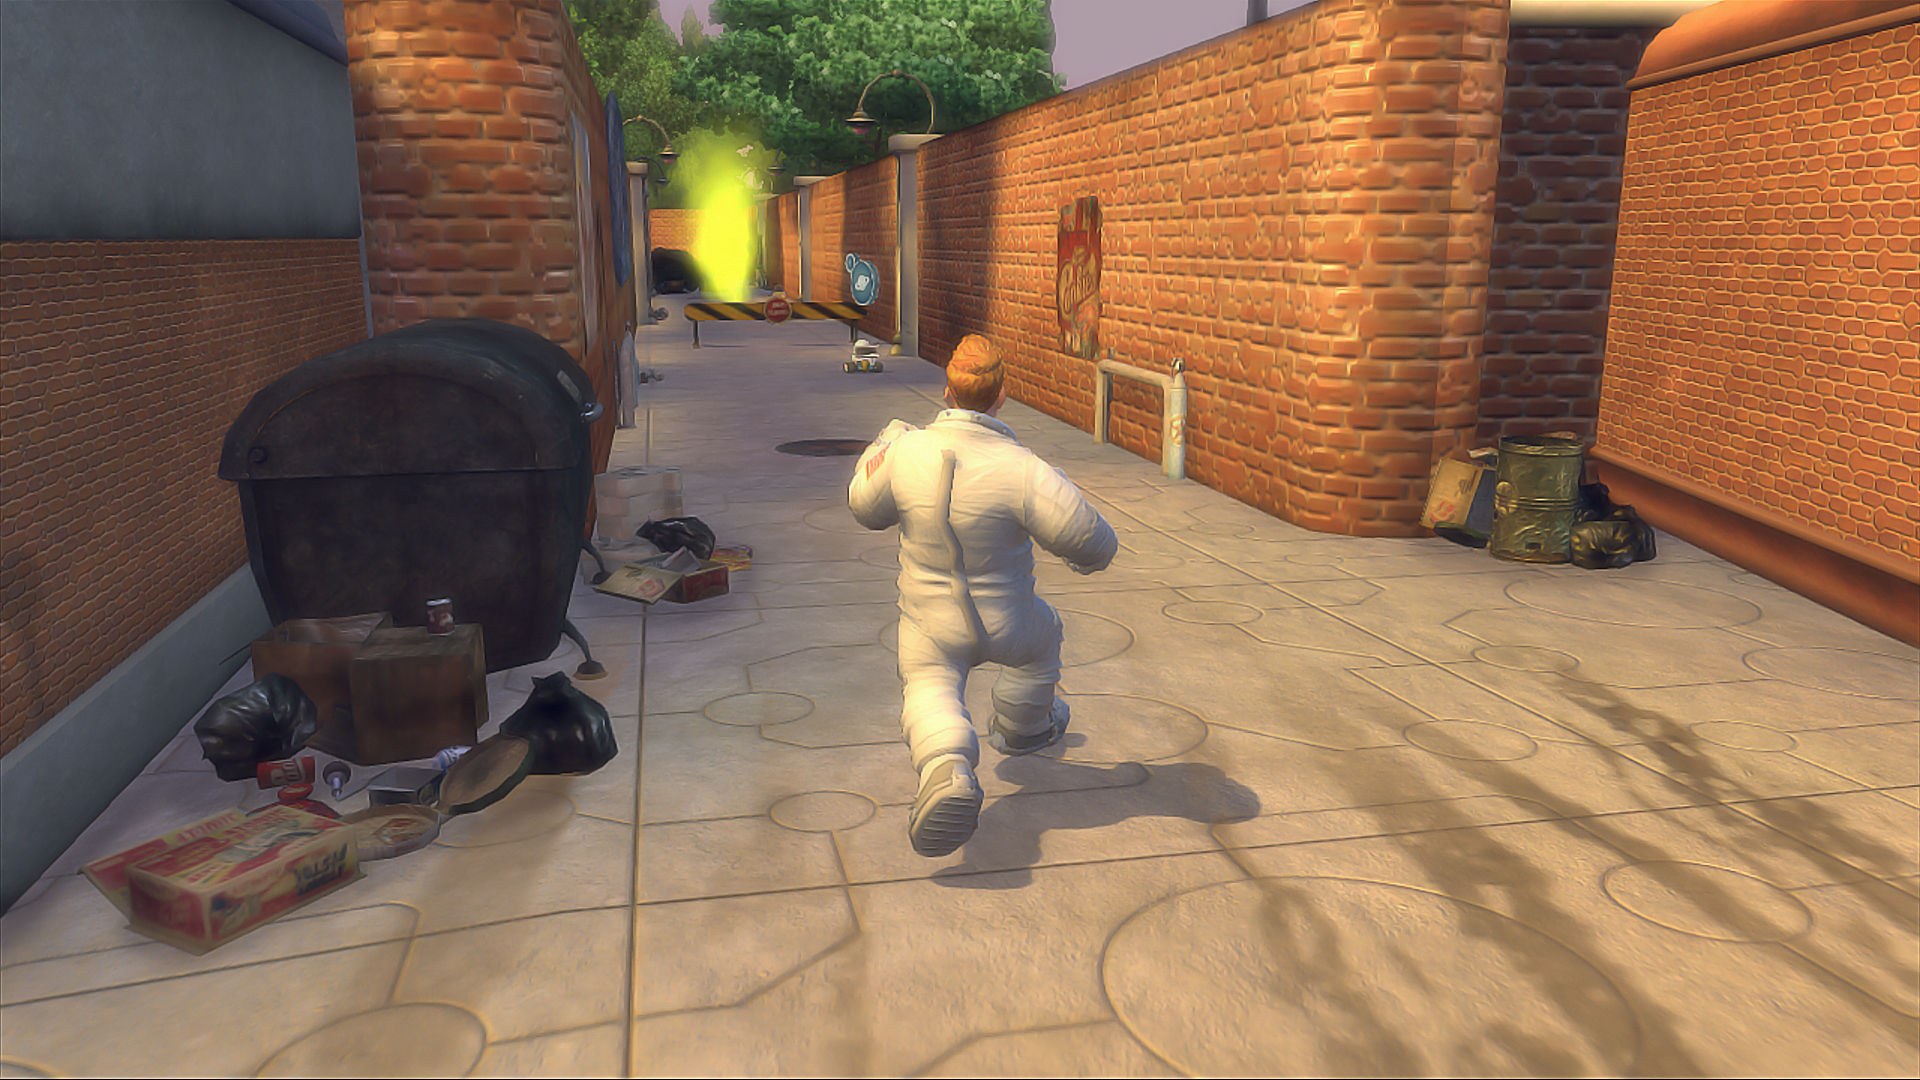 Planet 51: The Game Xbox 360 Chuck following R.O.V.E.R. through the back alley.